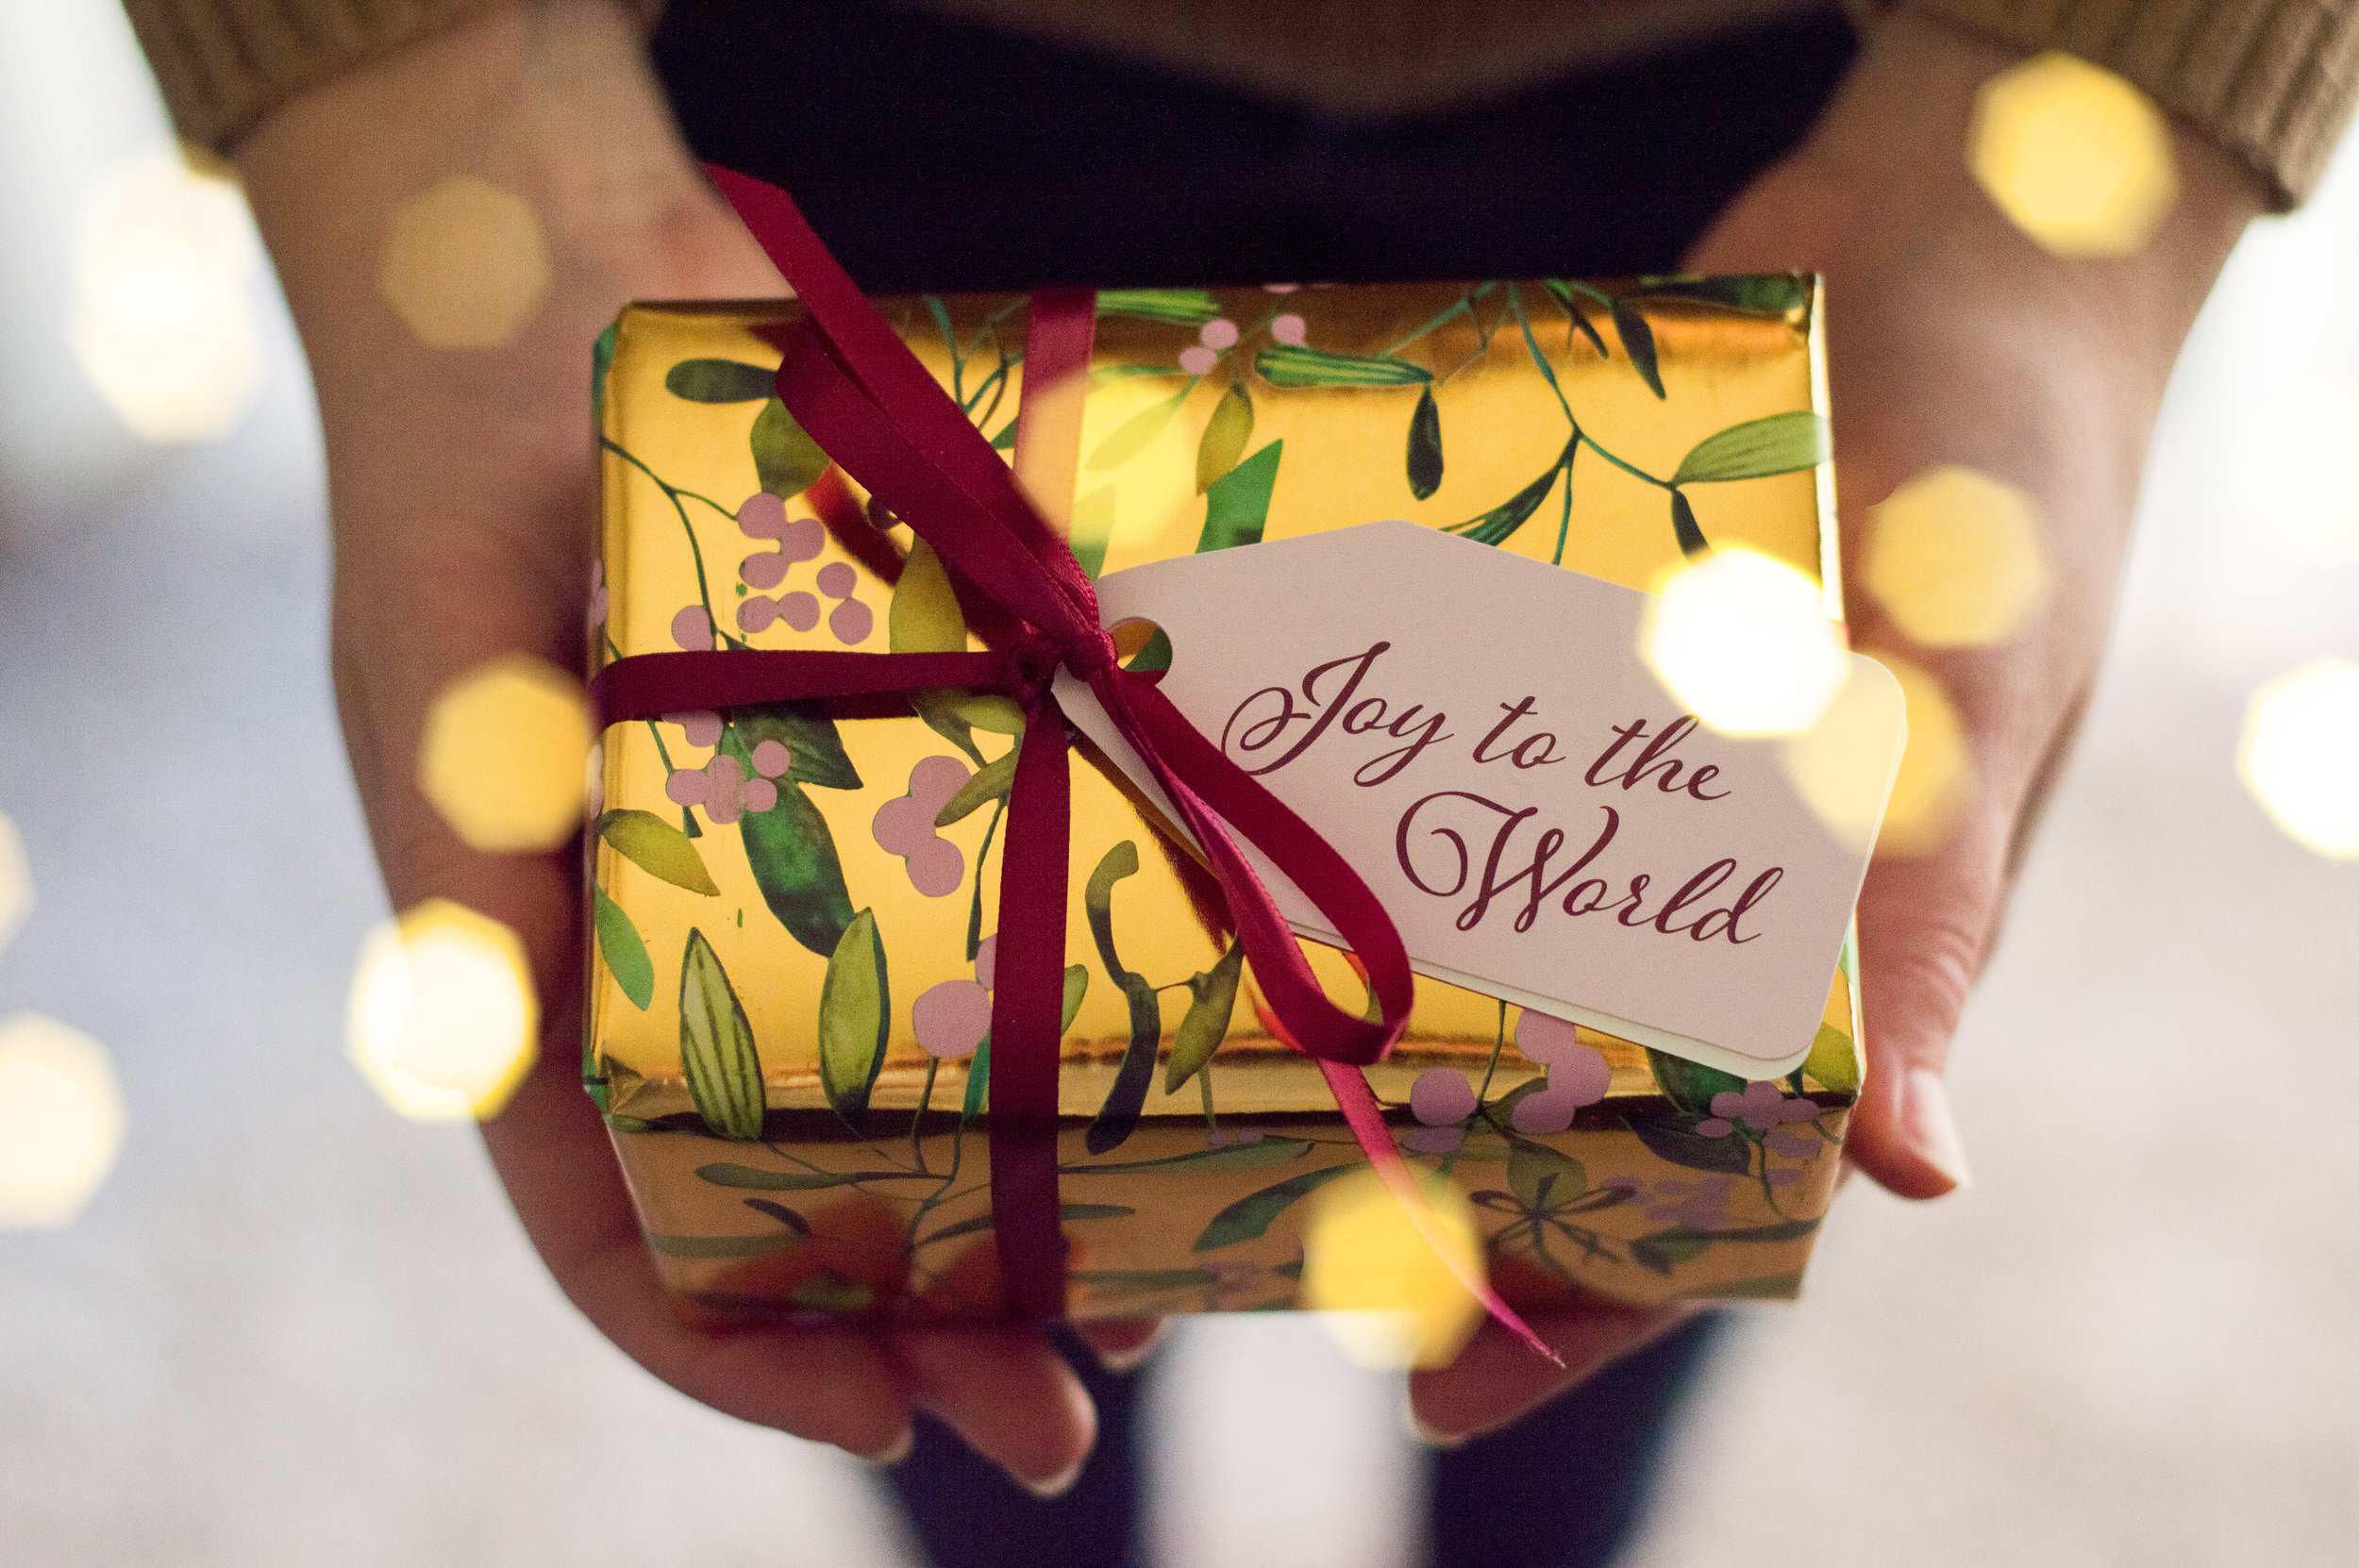 Holiday gift guide, top 20 holiday gifts, vanessa jordan photography, destination wedding photographer